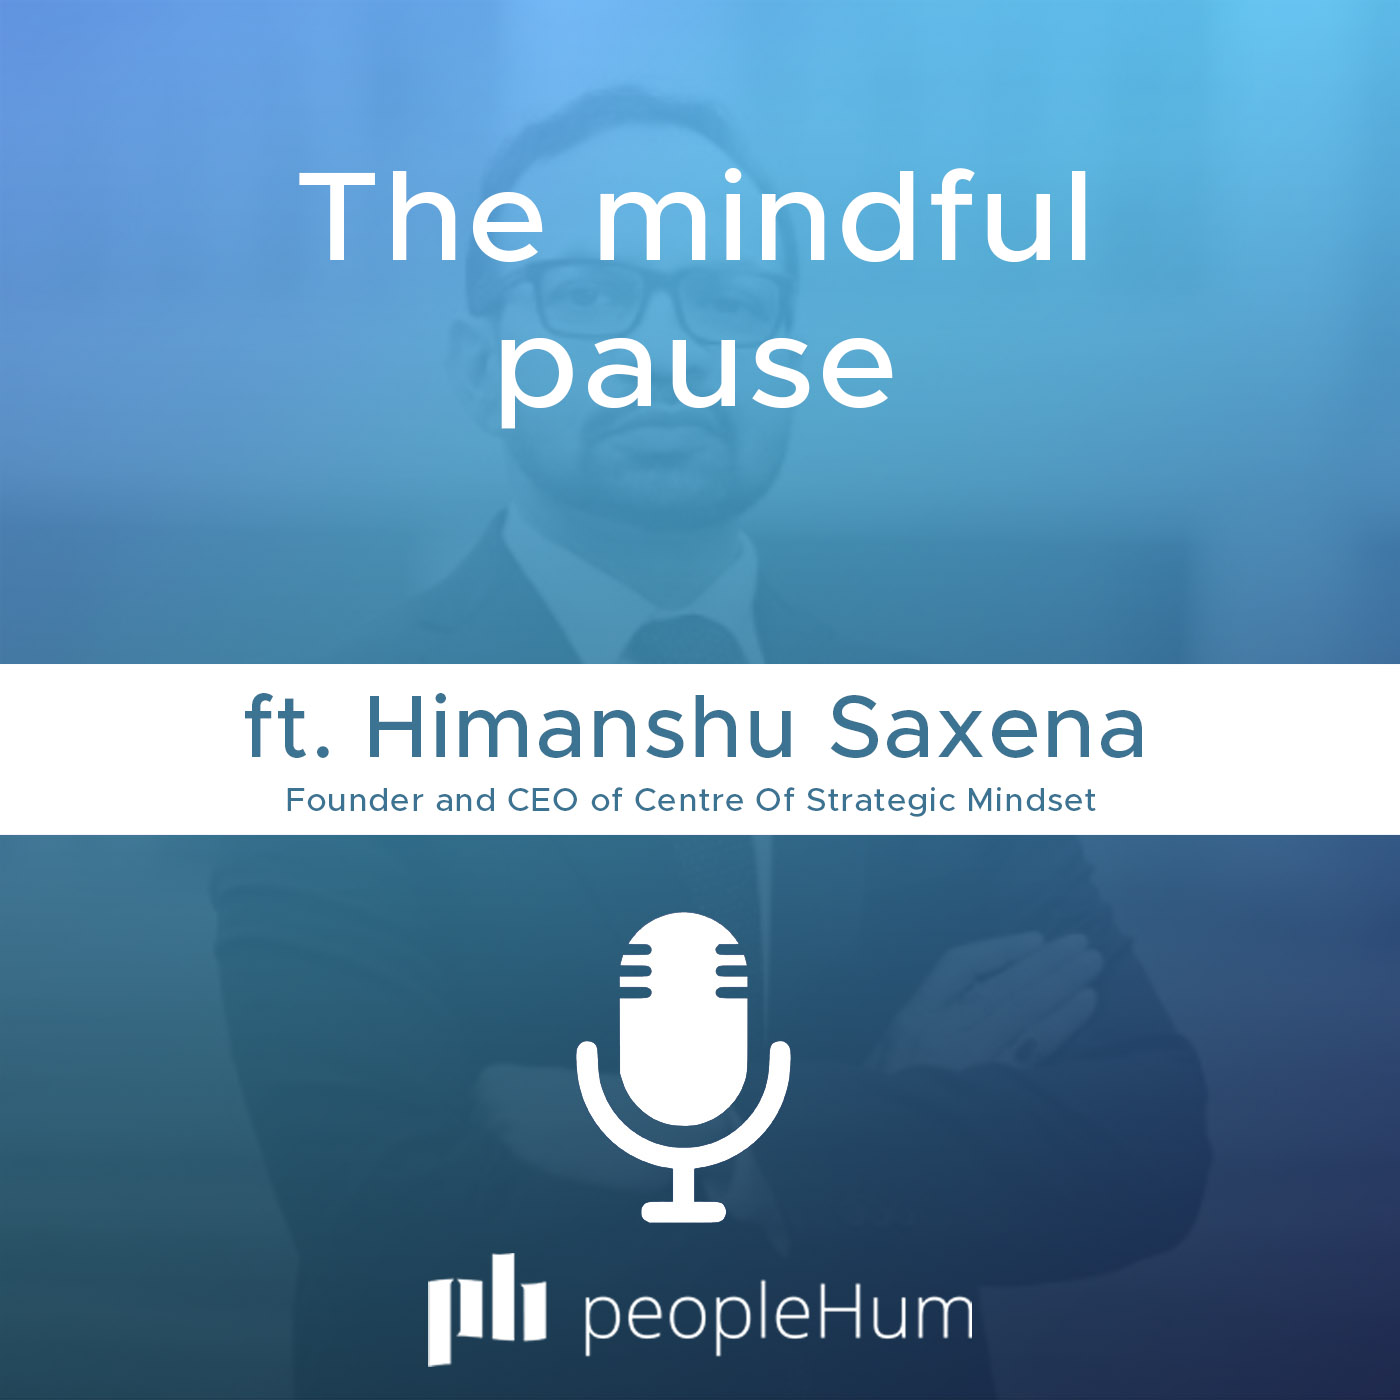 The mindful pause, ft. Himanshu Saxena